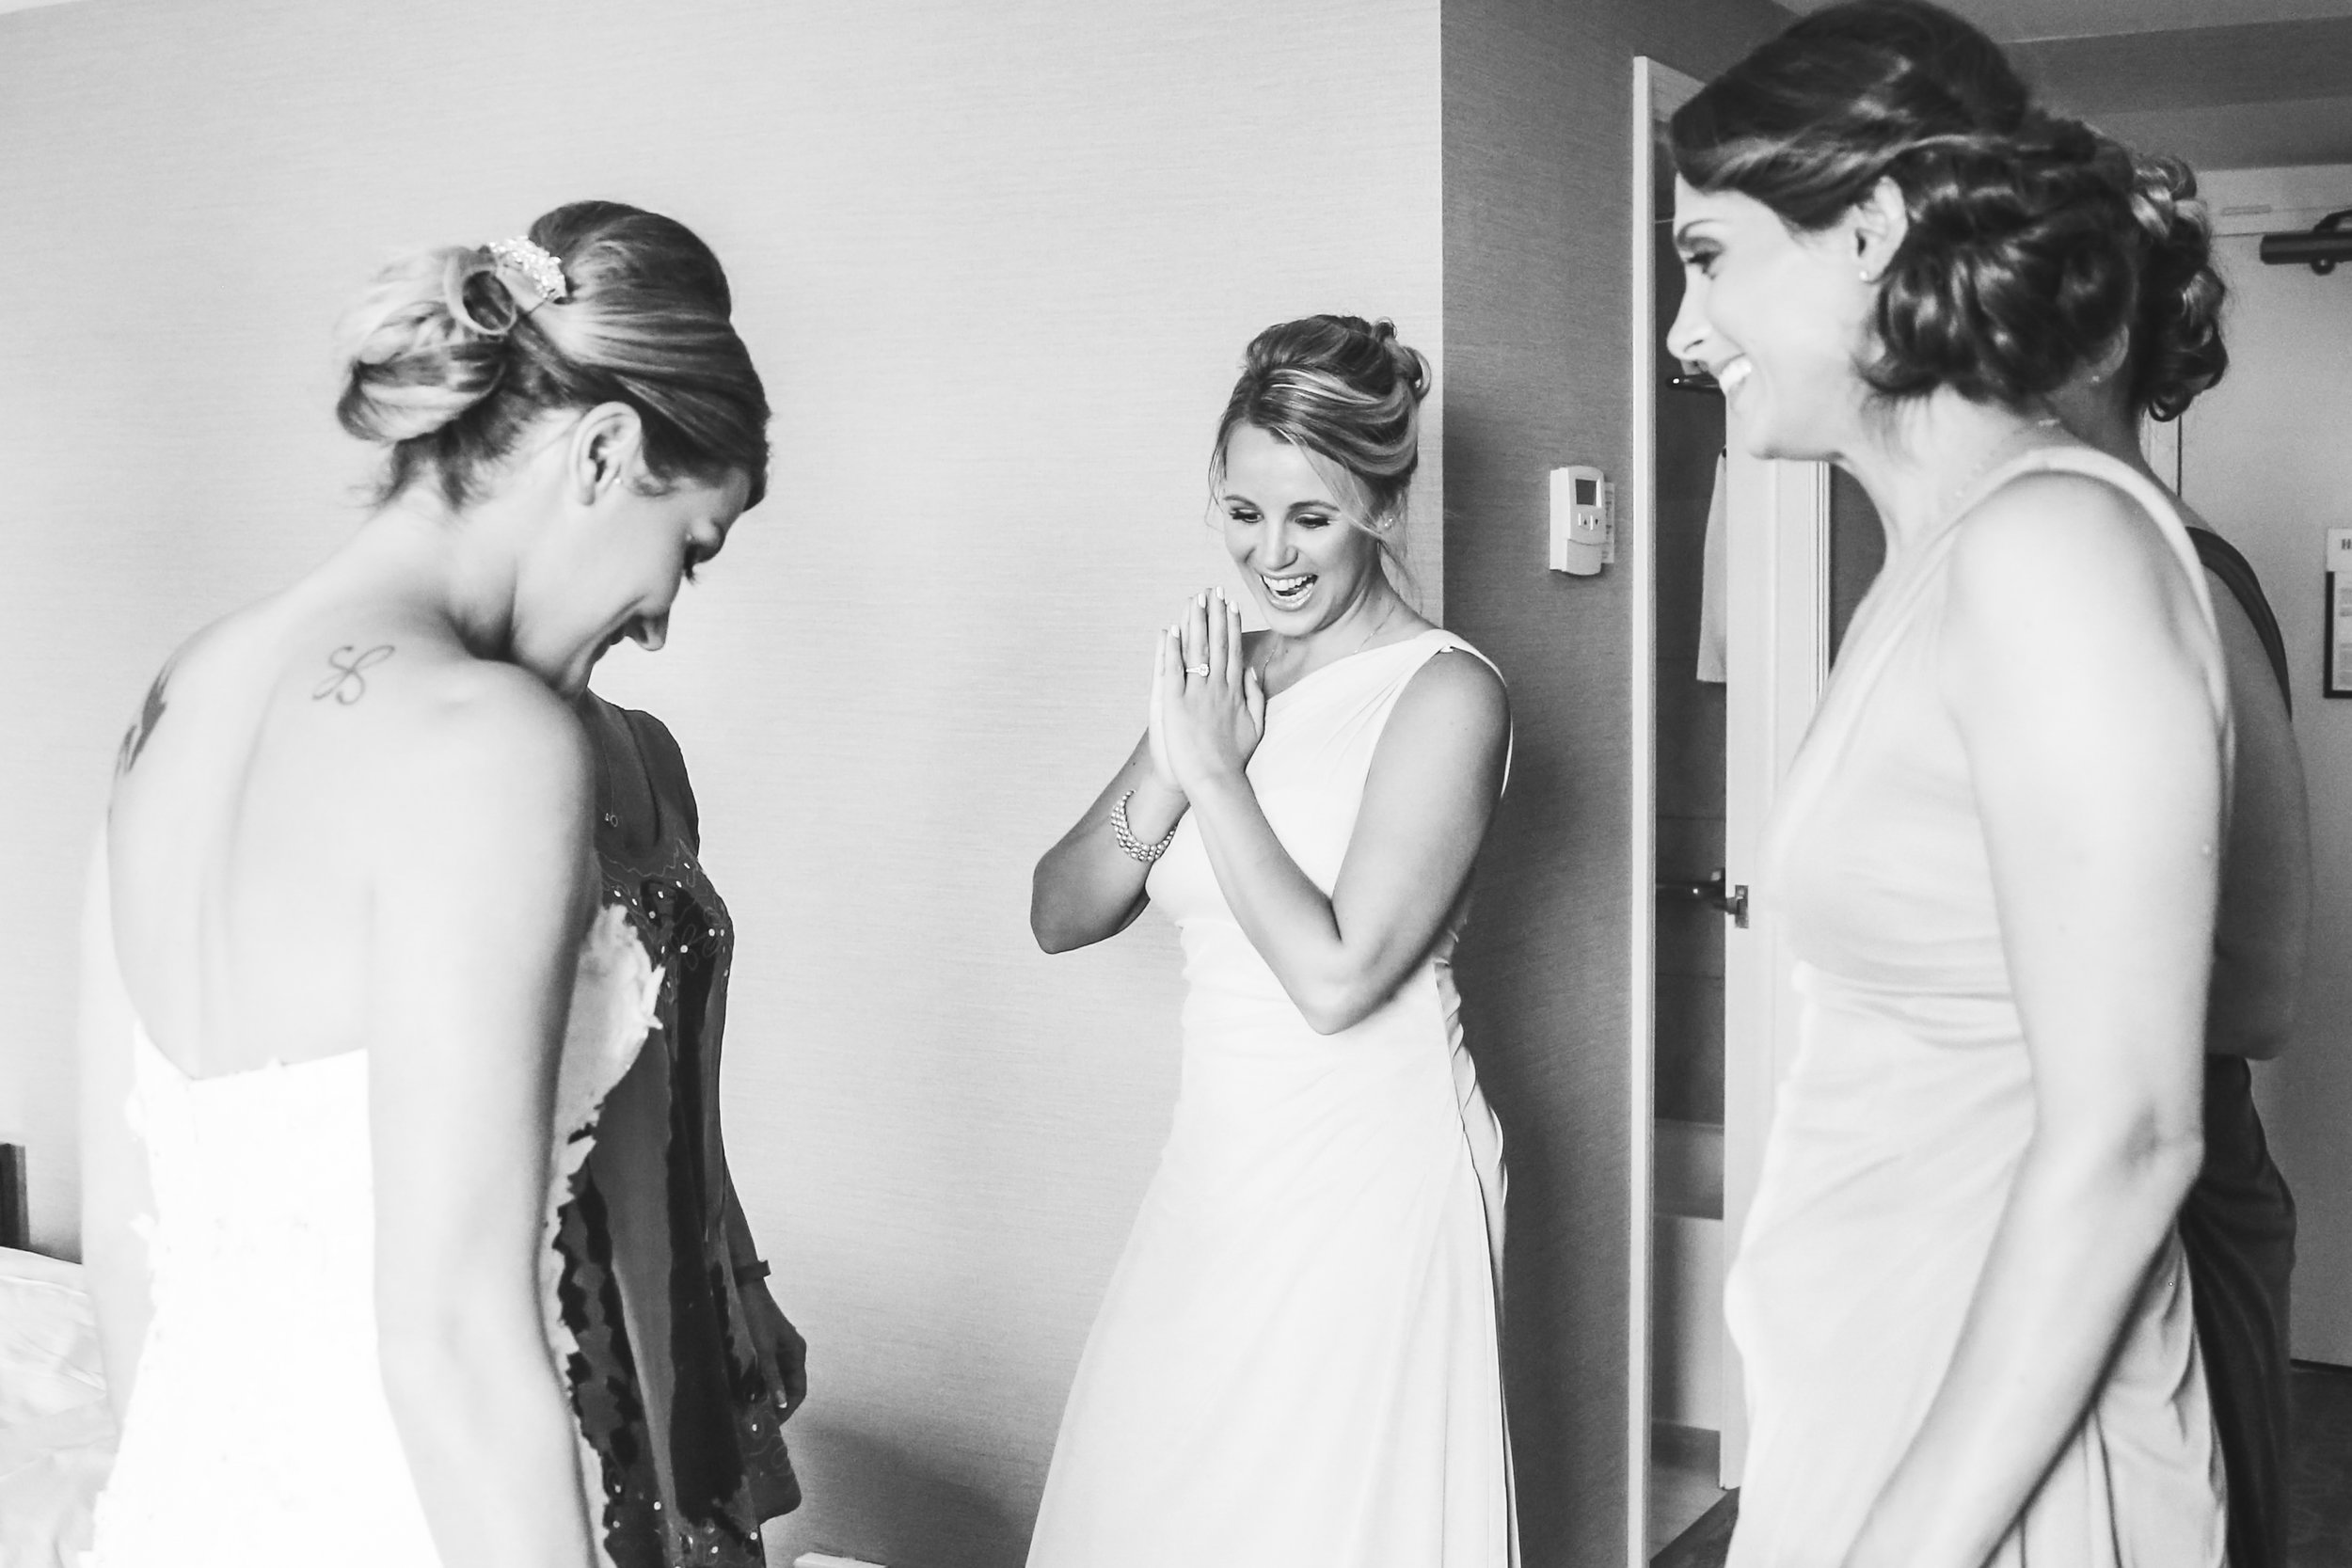 BE IN THE MOMENT! Check any personal issues at the door and help your bride in any way that you can to have the happiest day of her life.